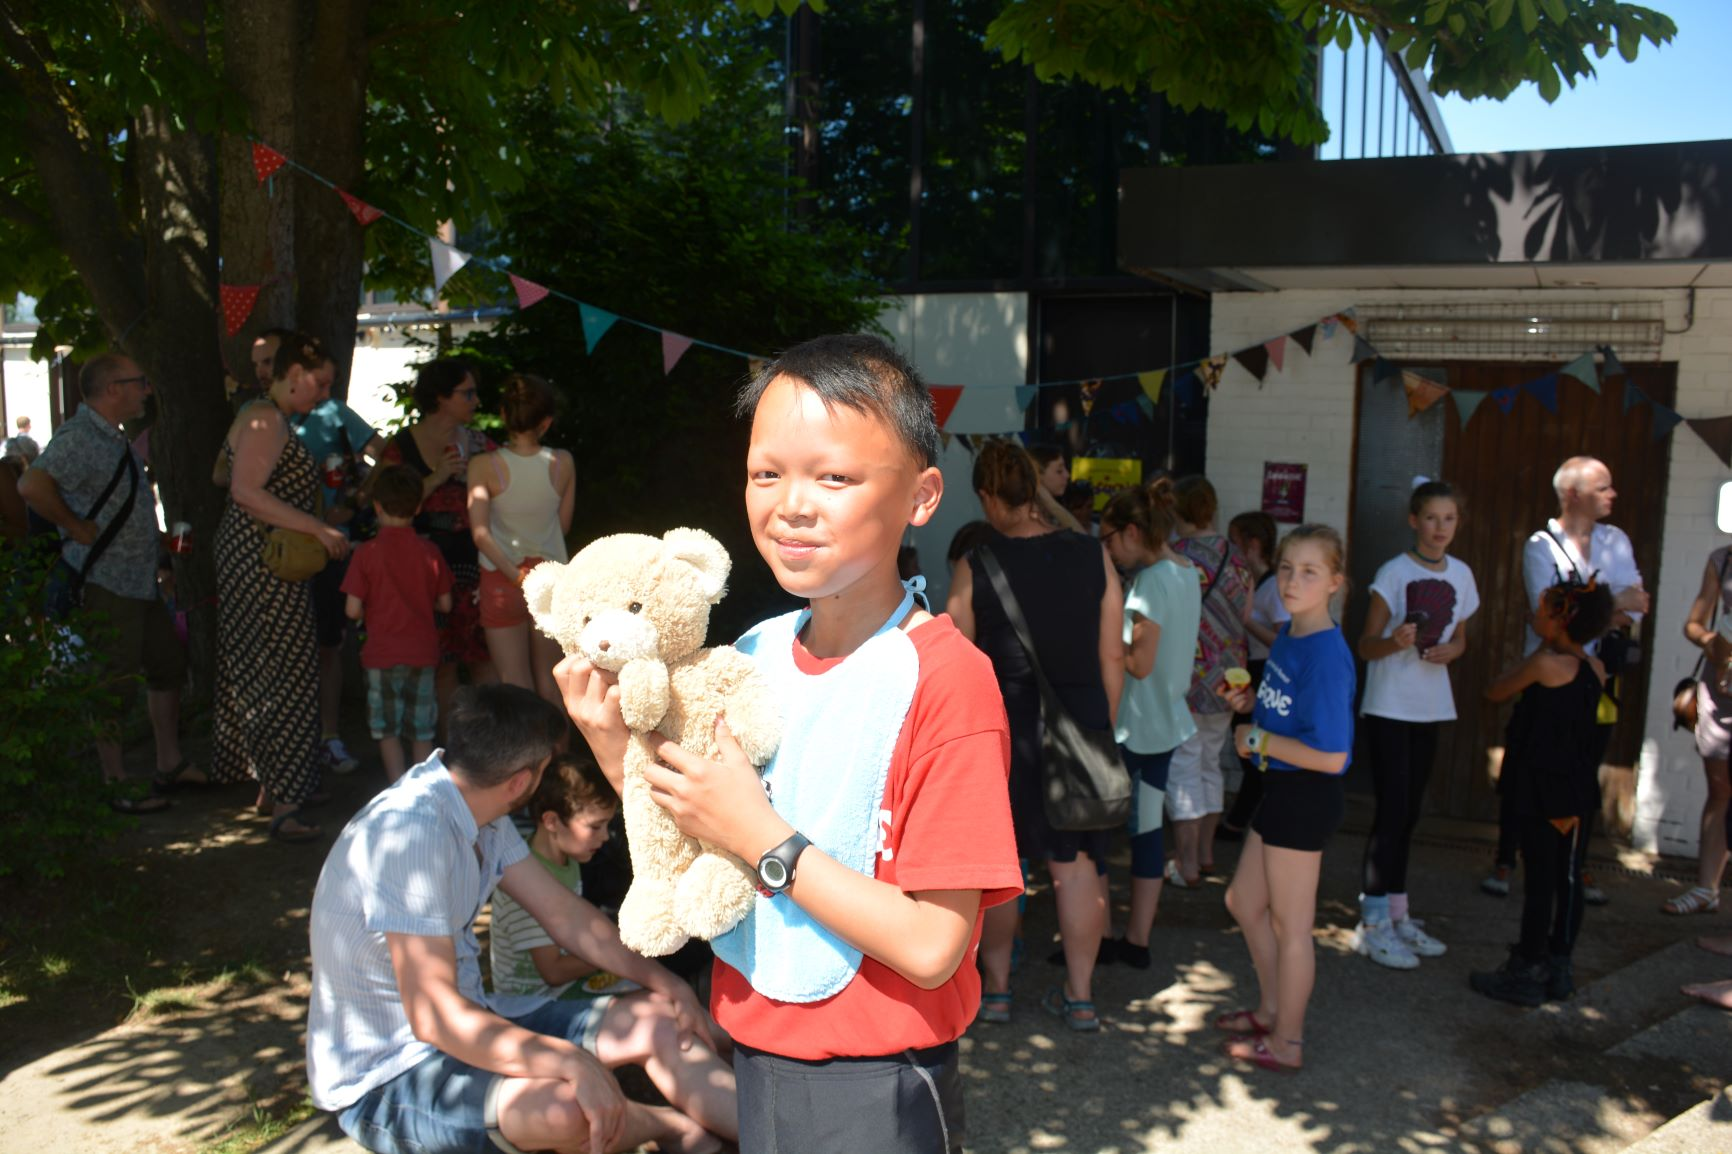 copie photo 5 alentoure